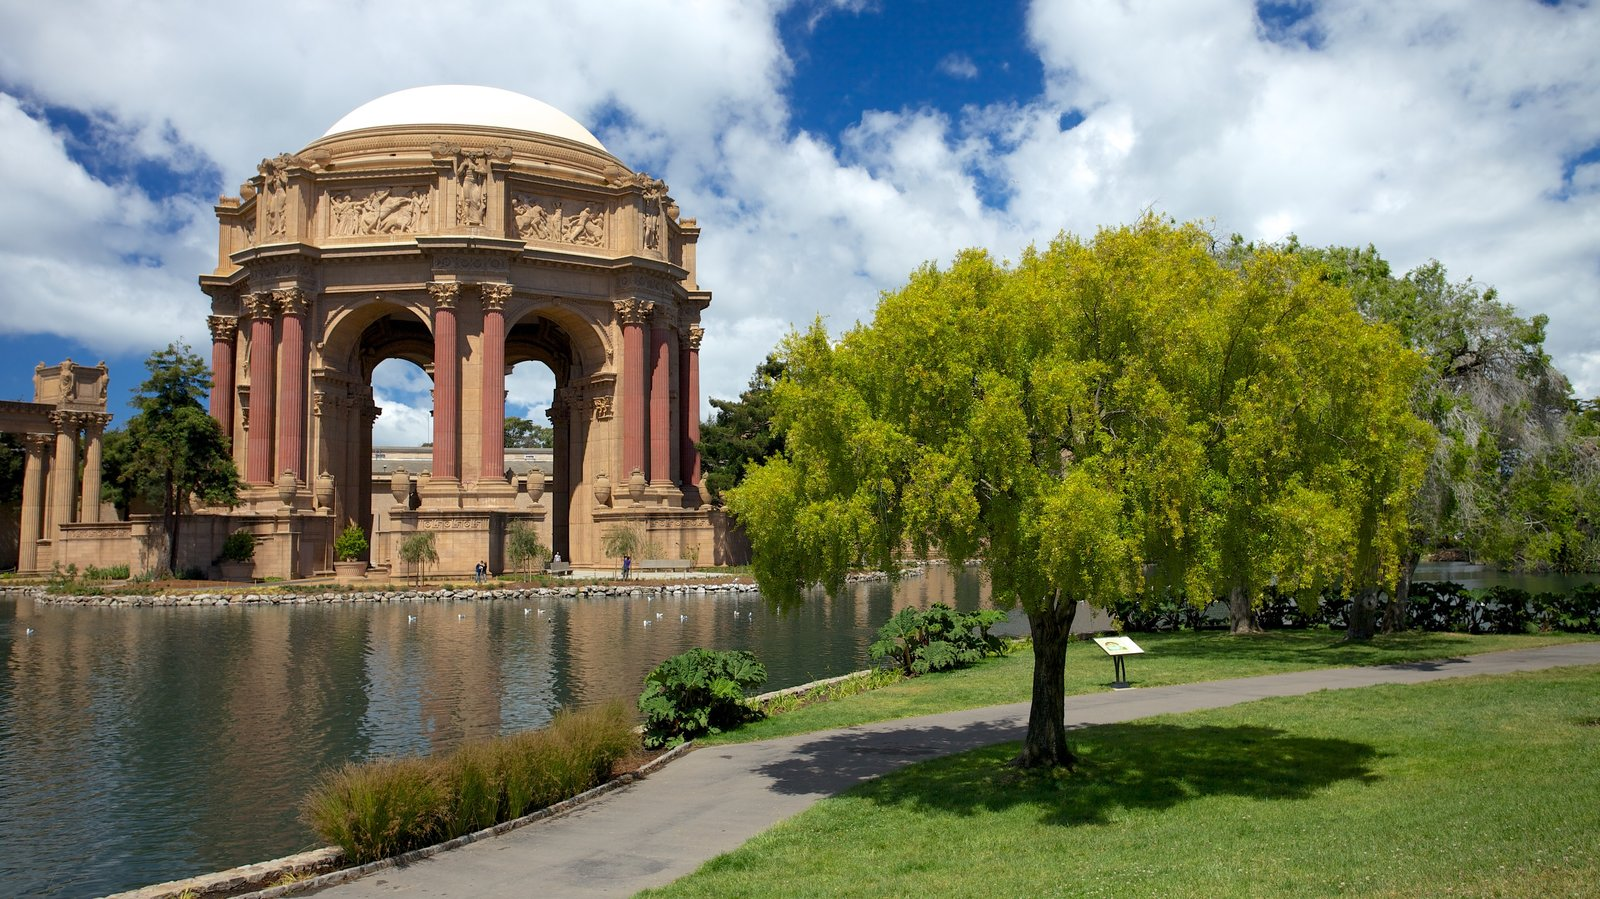 Palace of Fine Arts showing heritage architecture and a garden